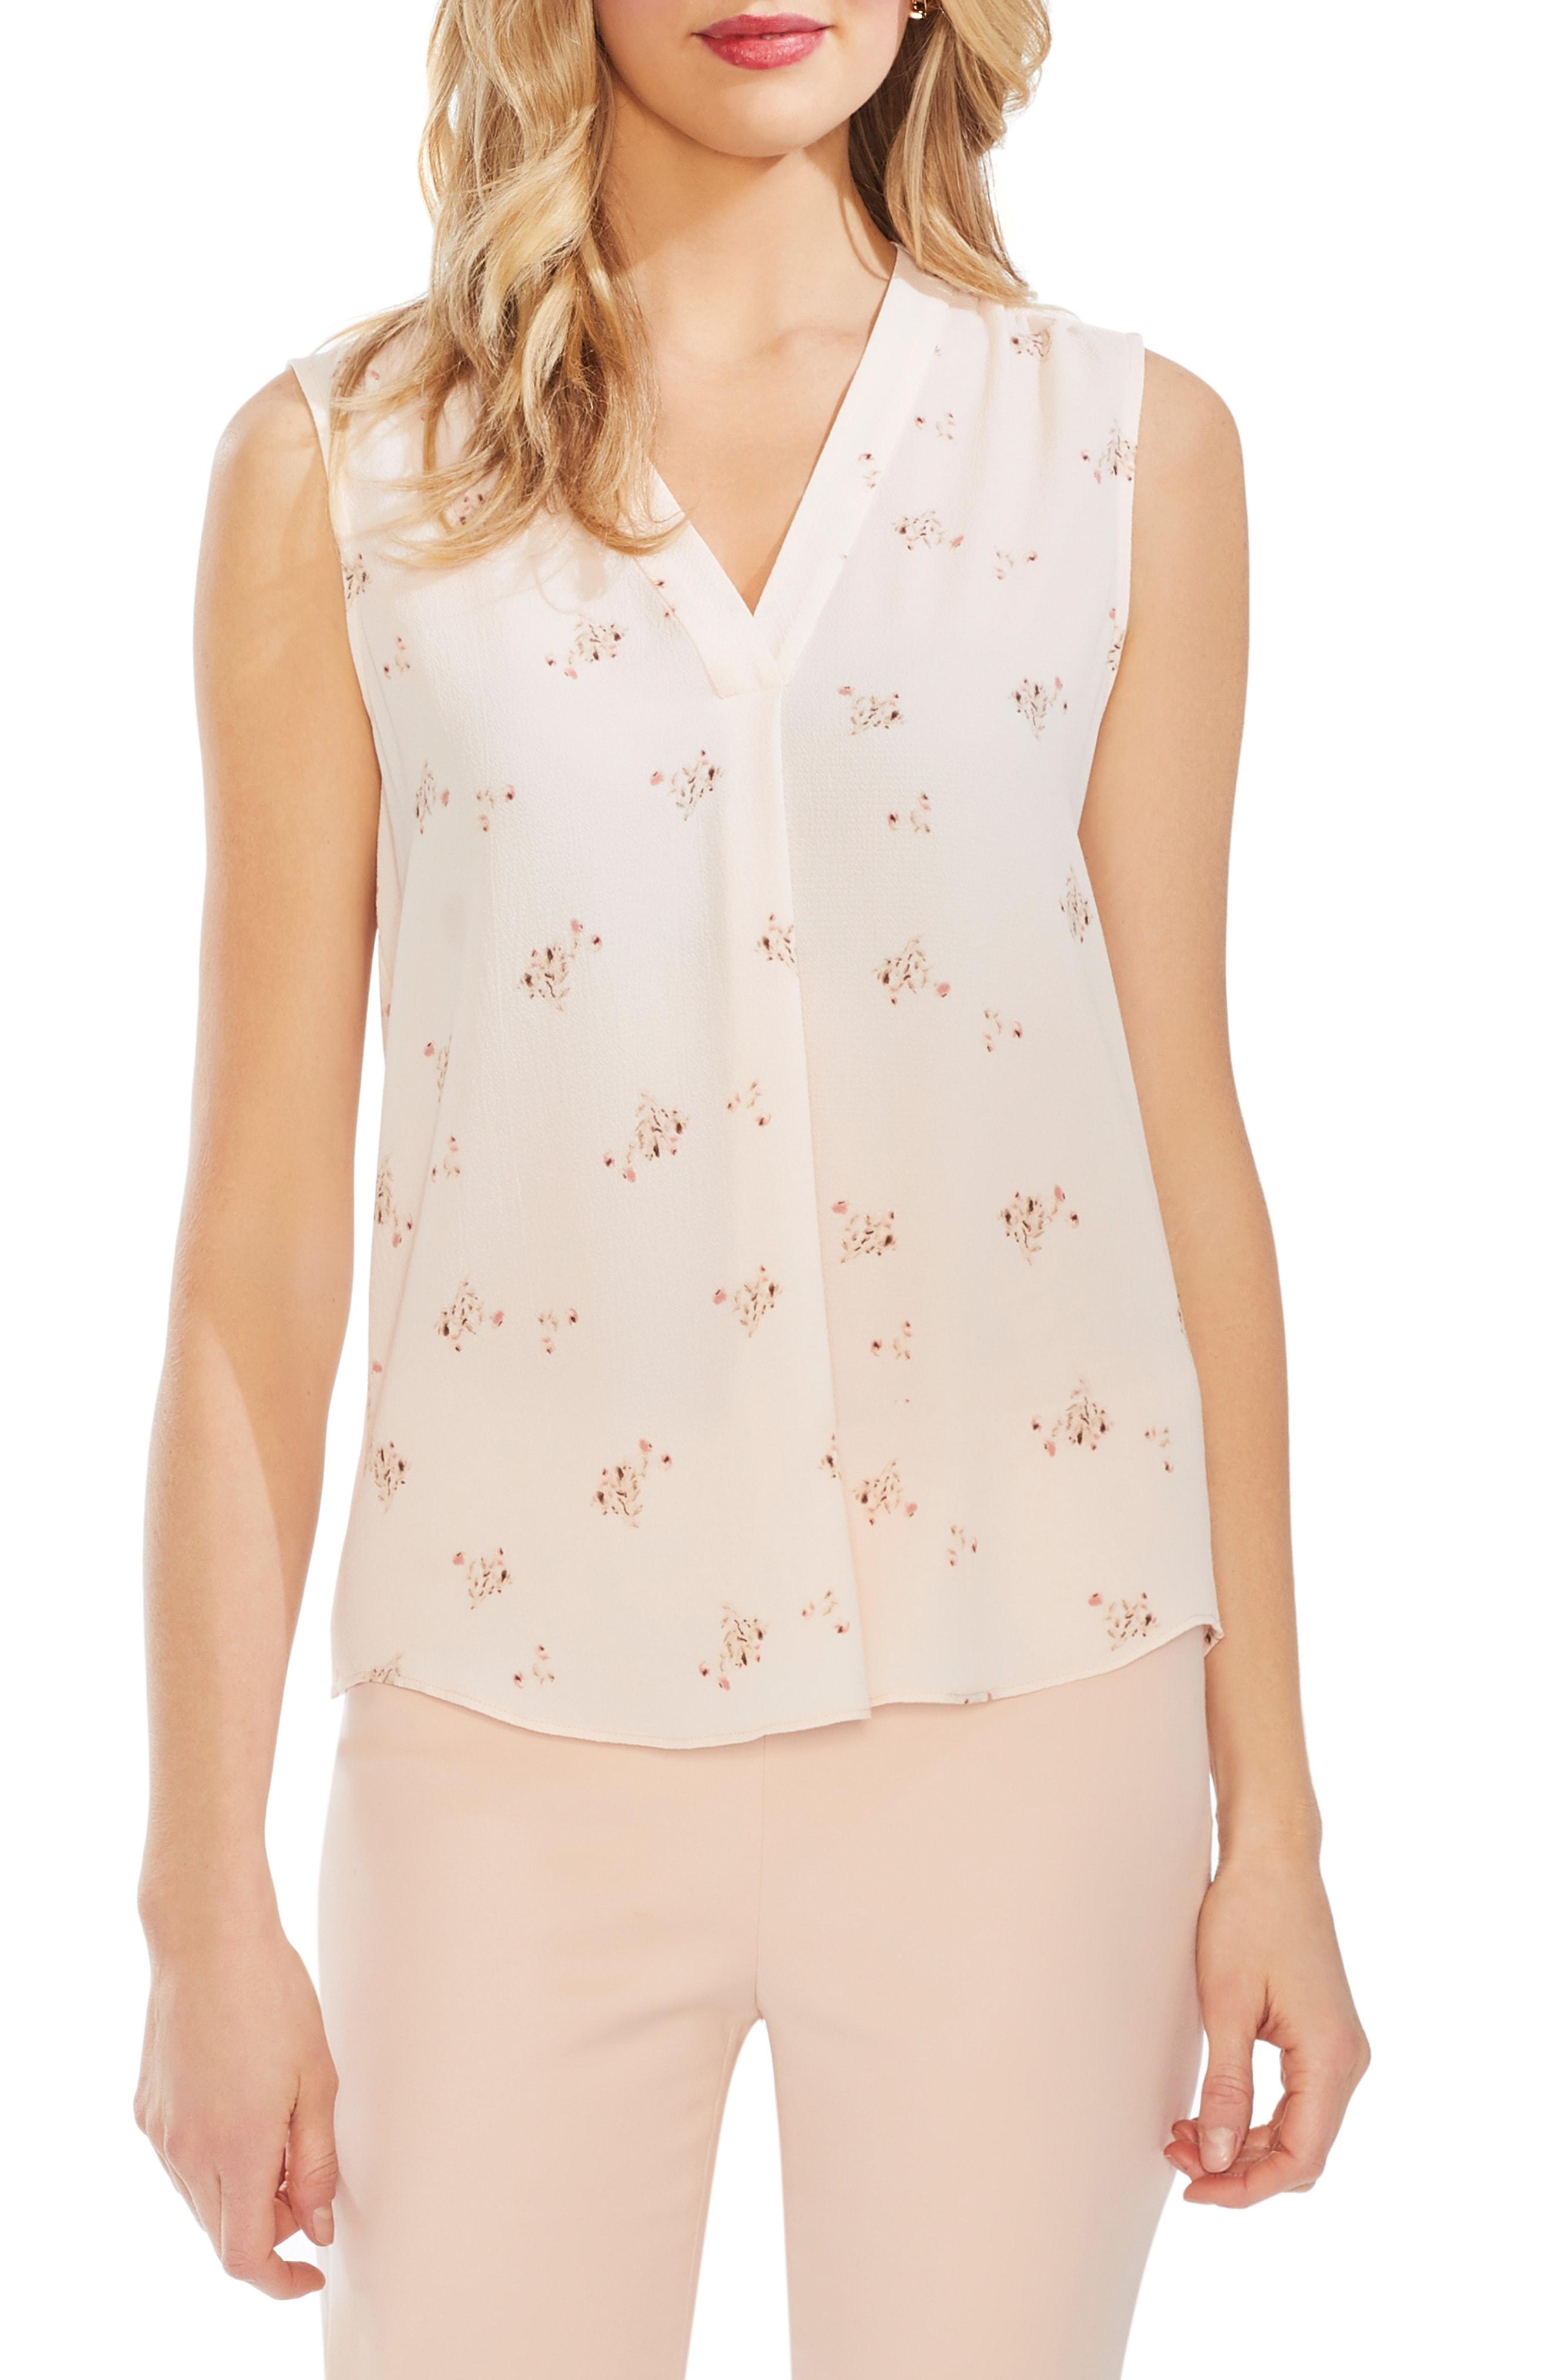 391049fba767f Lyst - Vince Camuto Desert Bouquet Sleeveless Blouse in Natural